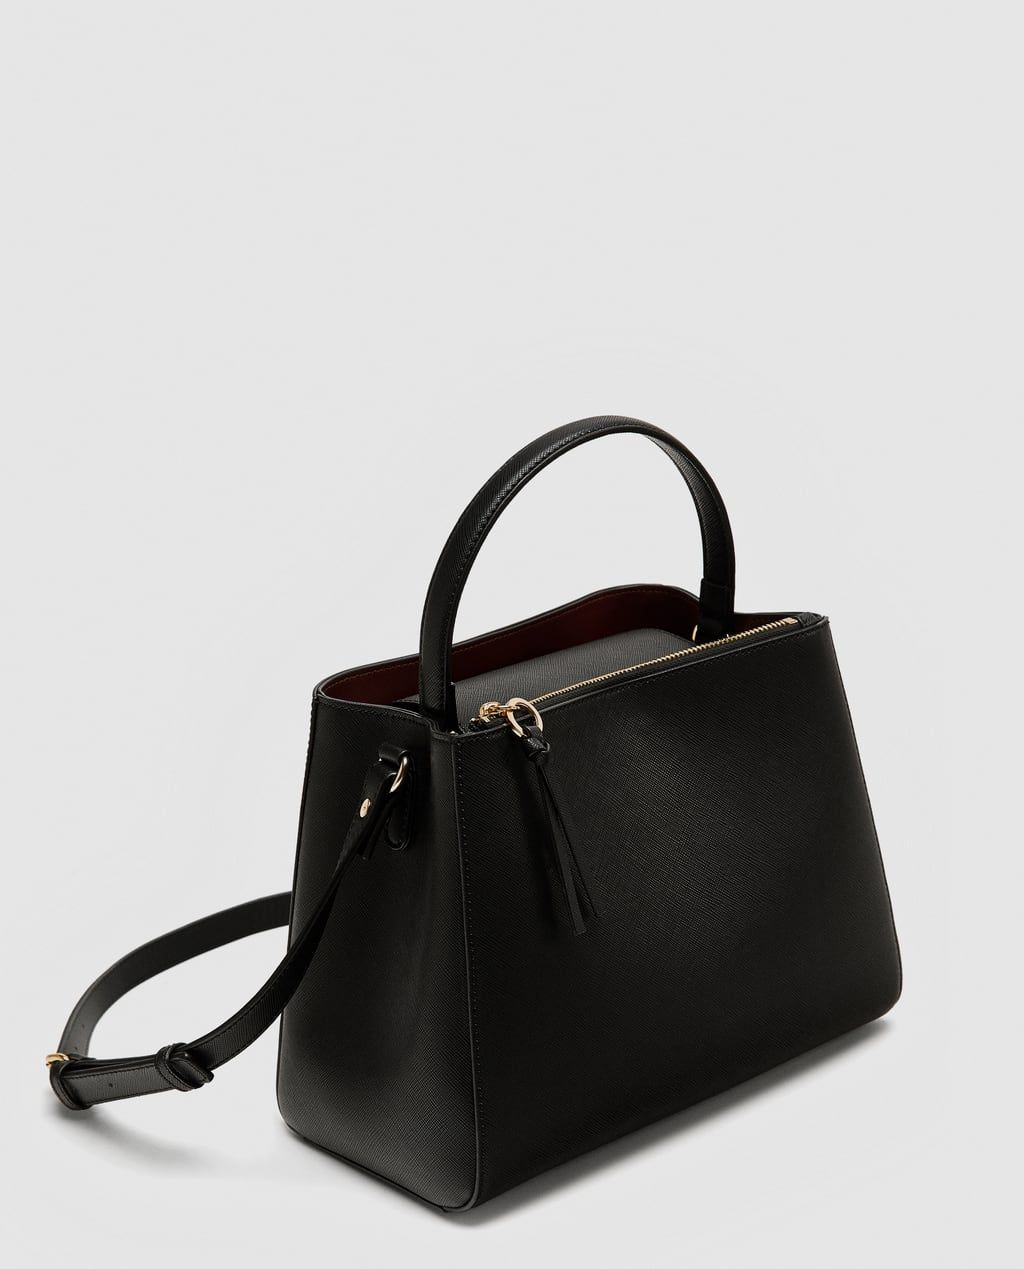 9dd478c156 Image 5 of MEDIUM TOTE BAG WITH ZIP from Zara | SS18 Women's Wear in ...